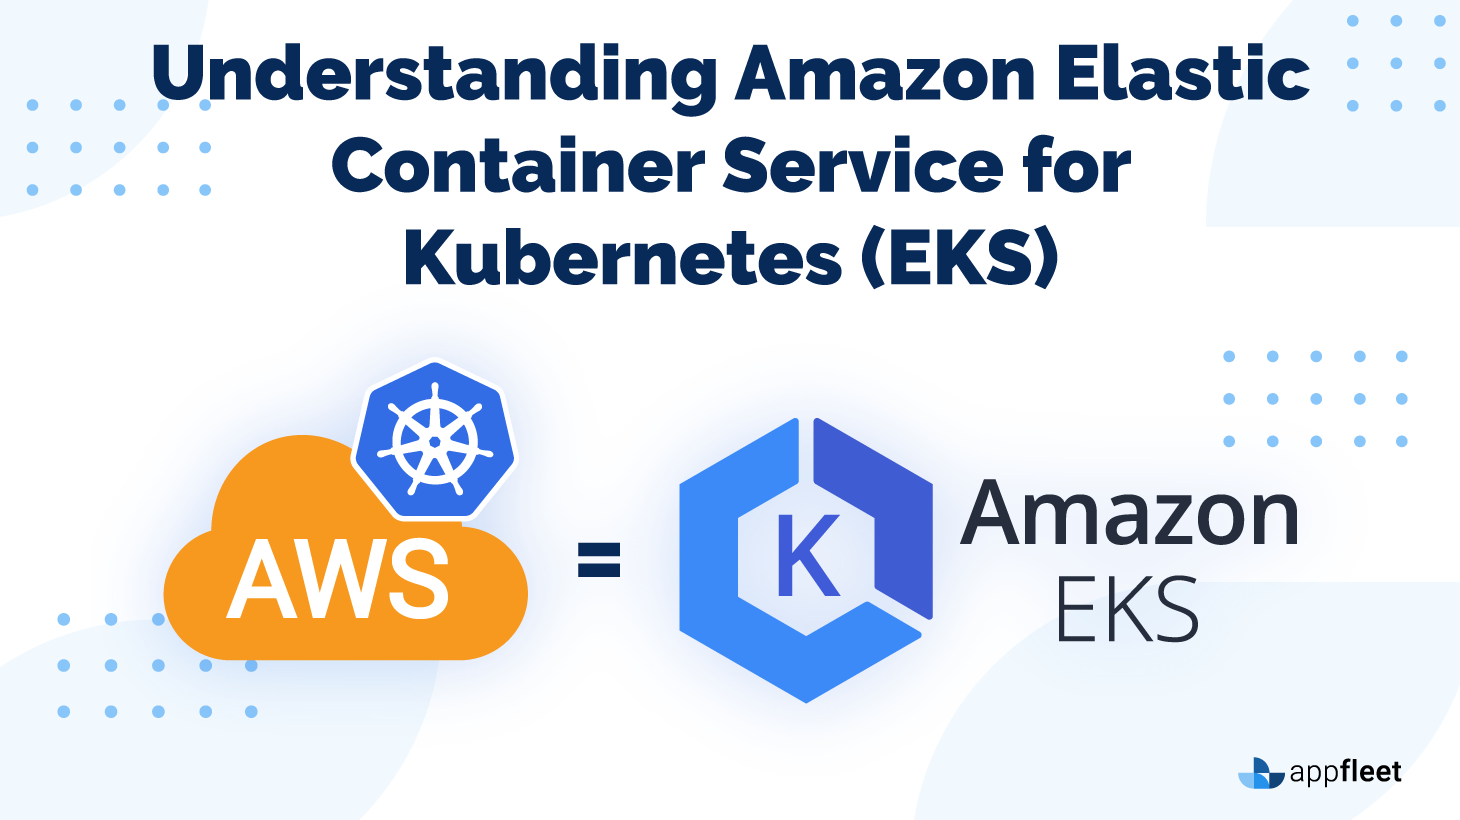 Understanding Amazon Elastic Container Service for Kubernetes (EKS)